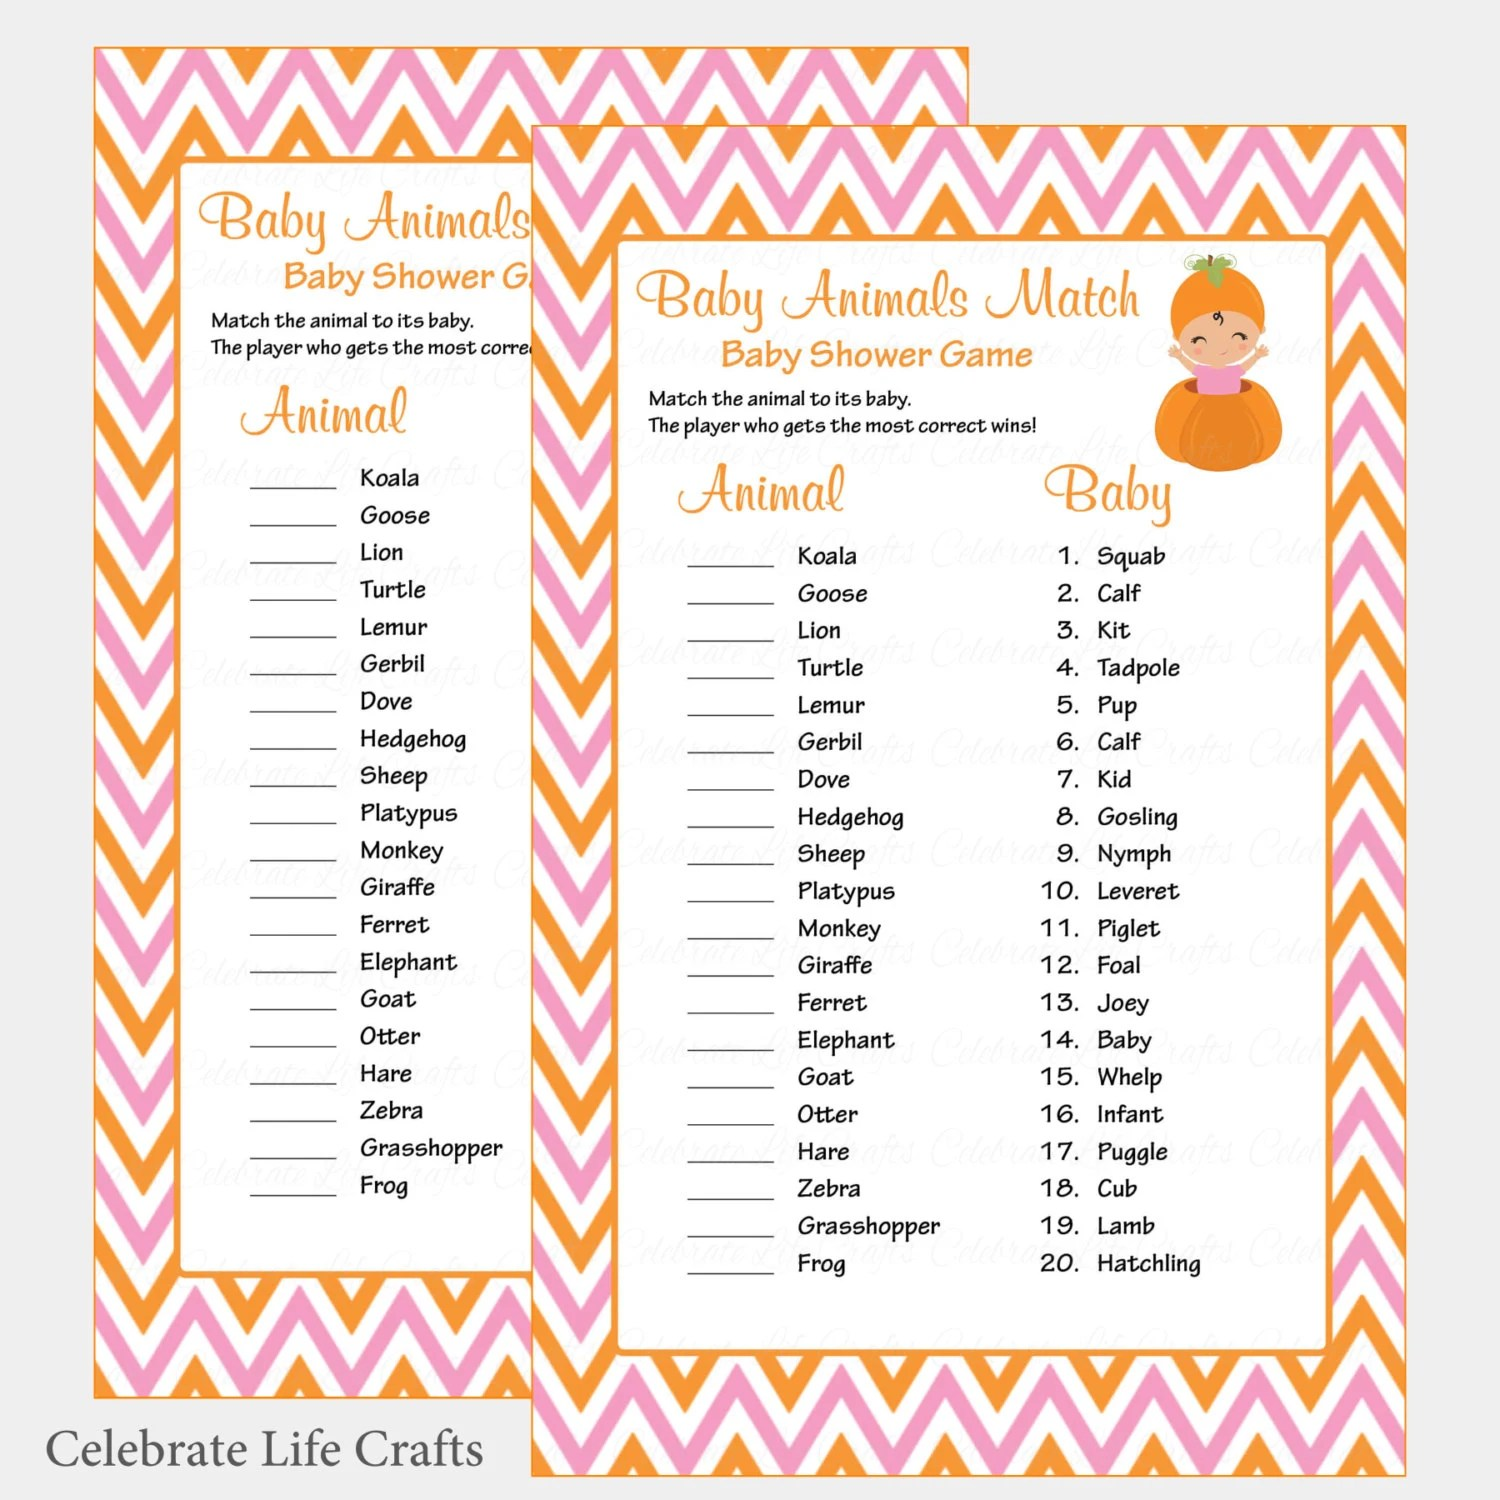 Baby Animals Match Game with Answer Key Printable Baby Etsy